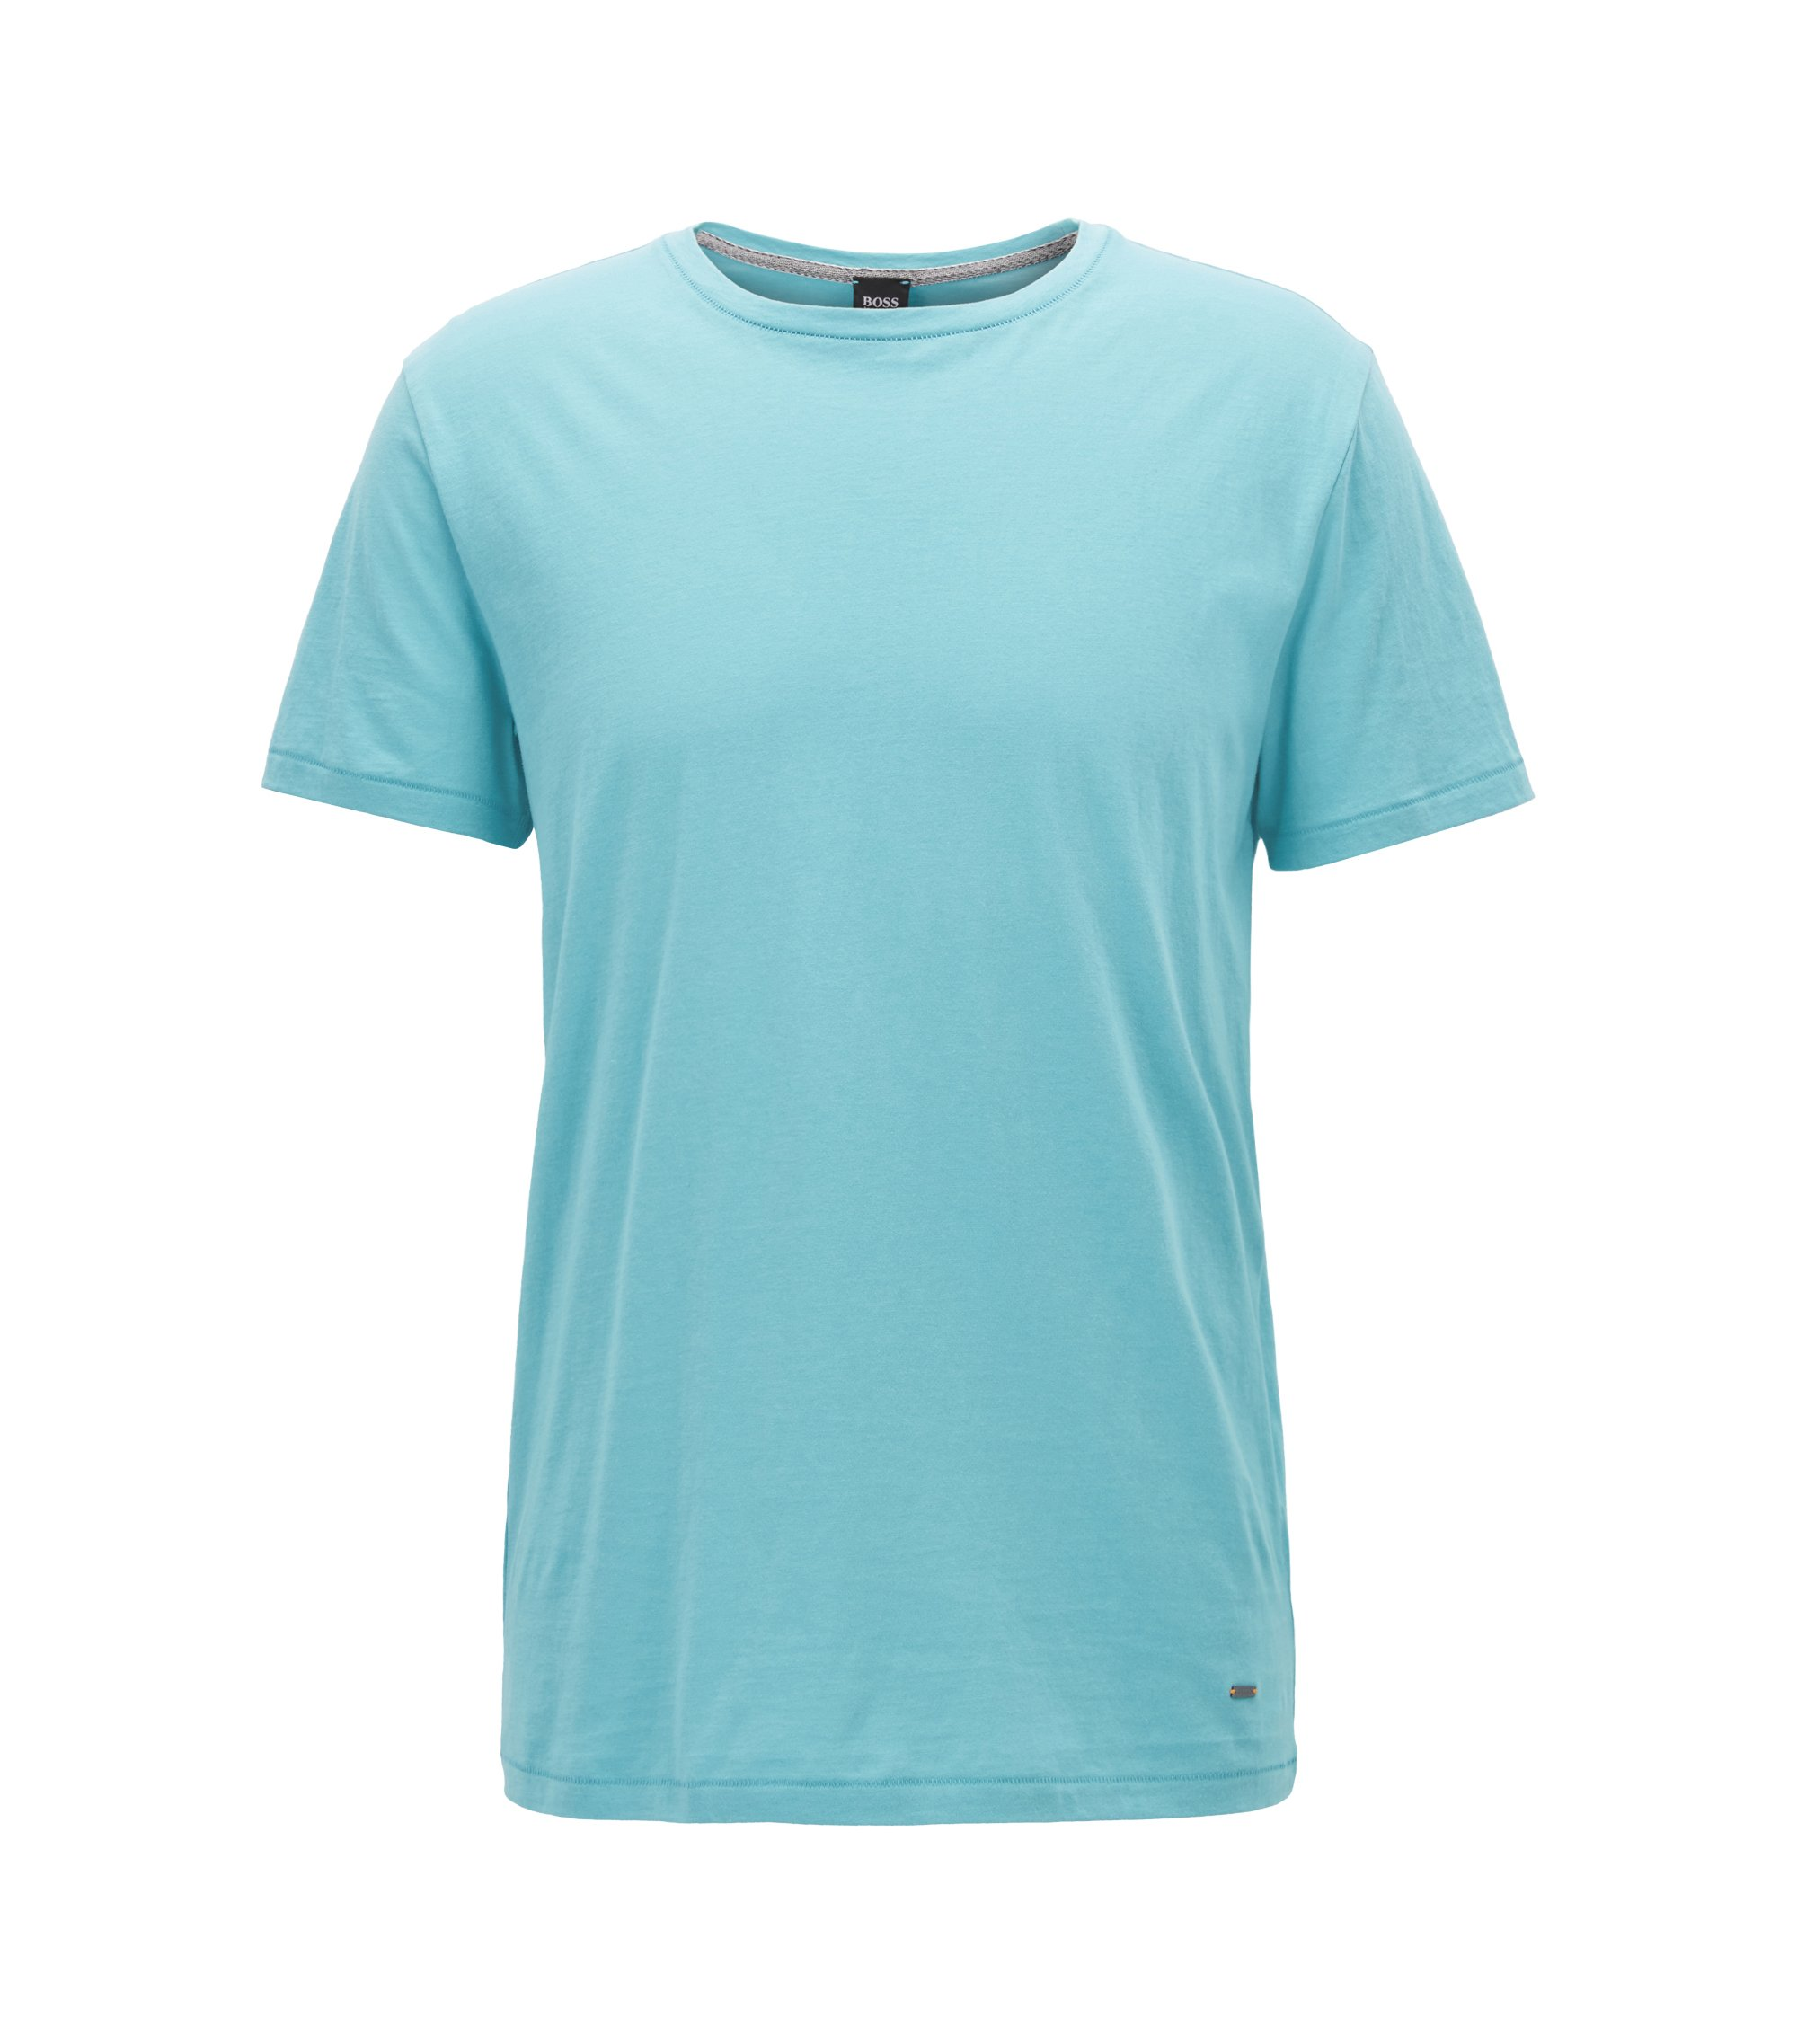 Regular-Fit T-Shirt aus Single Jersey, Türkis